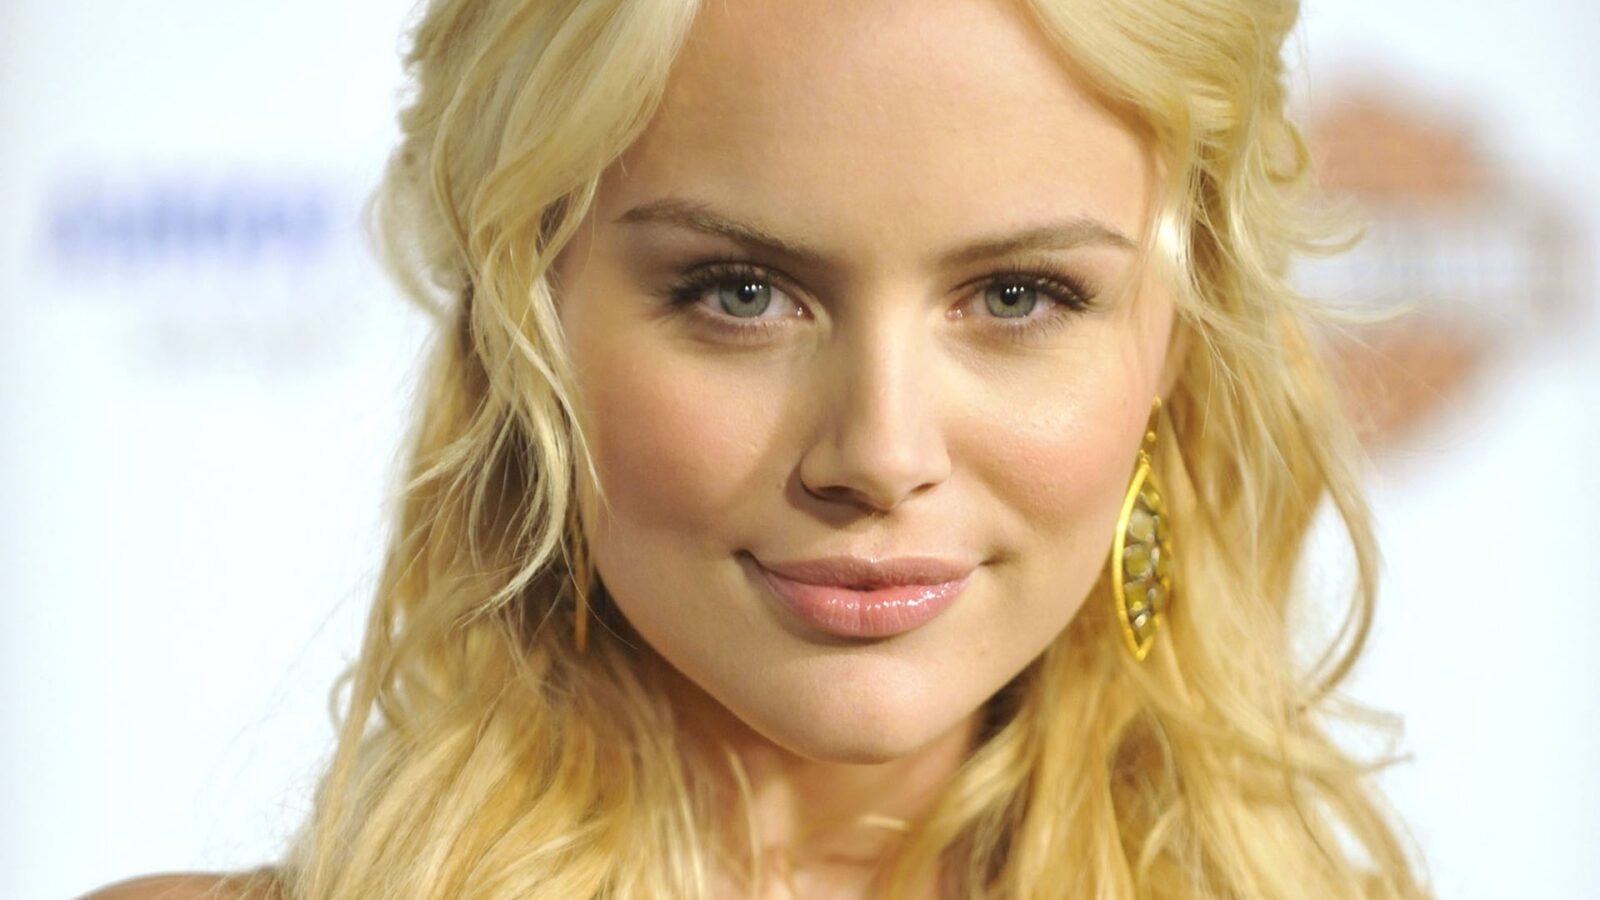 helena mattsson hd wallpapers high quality